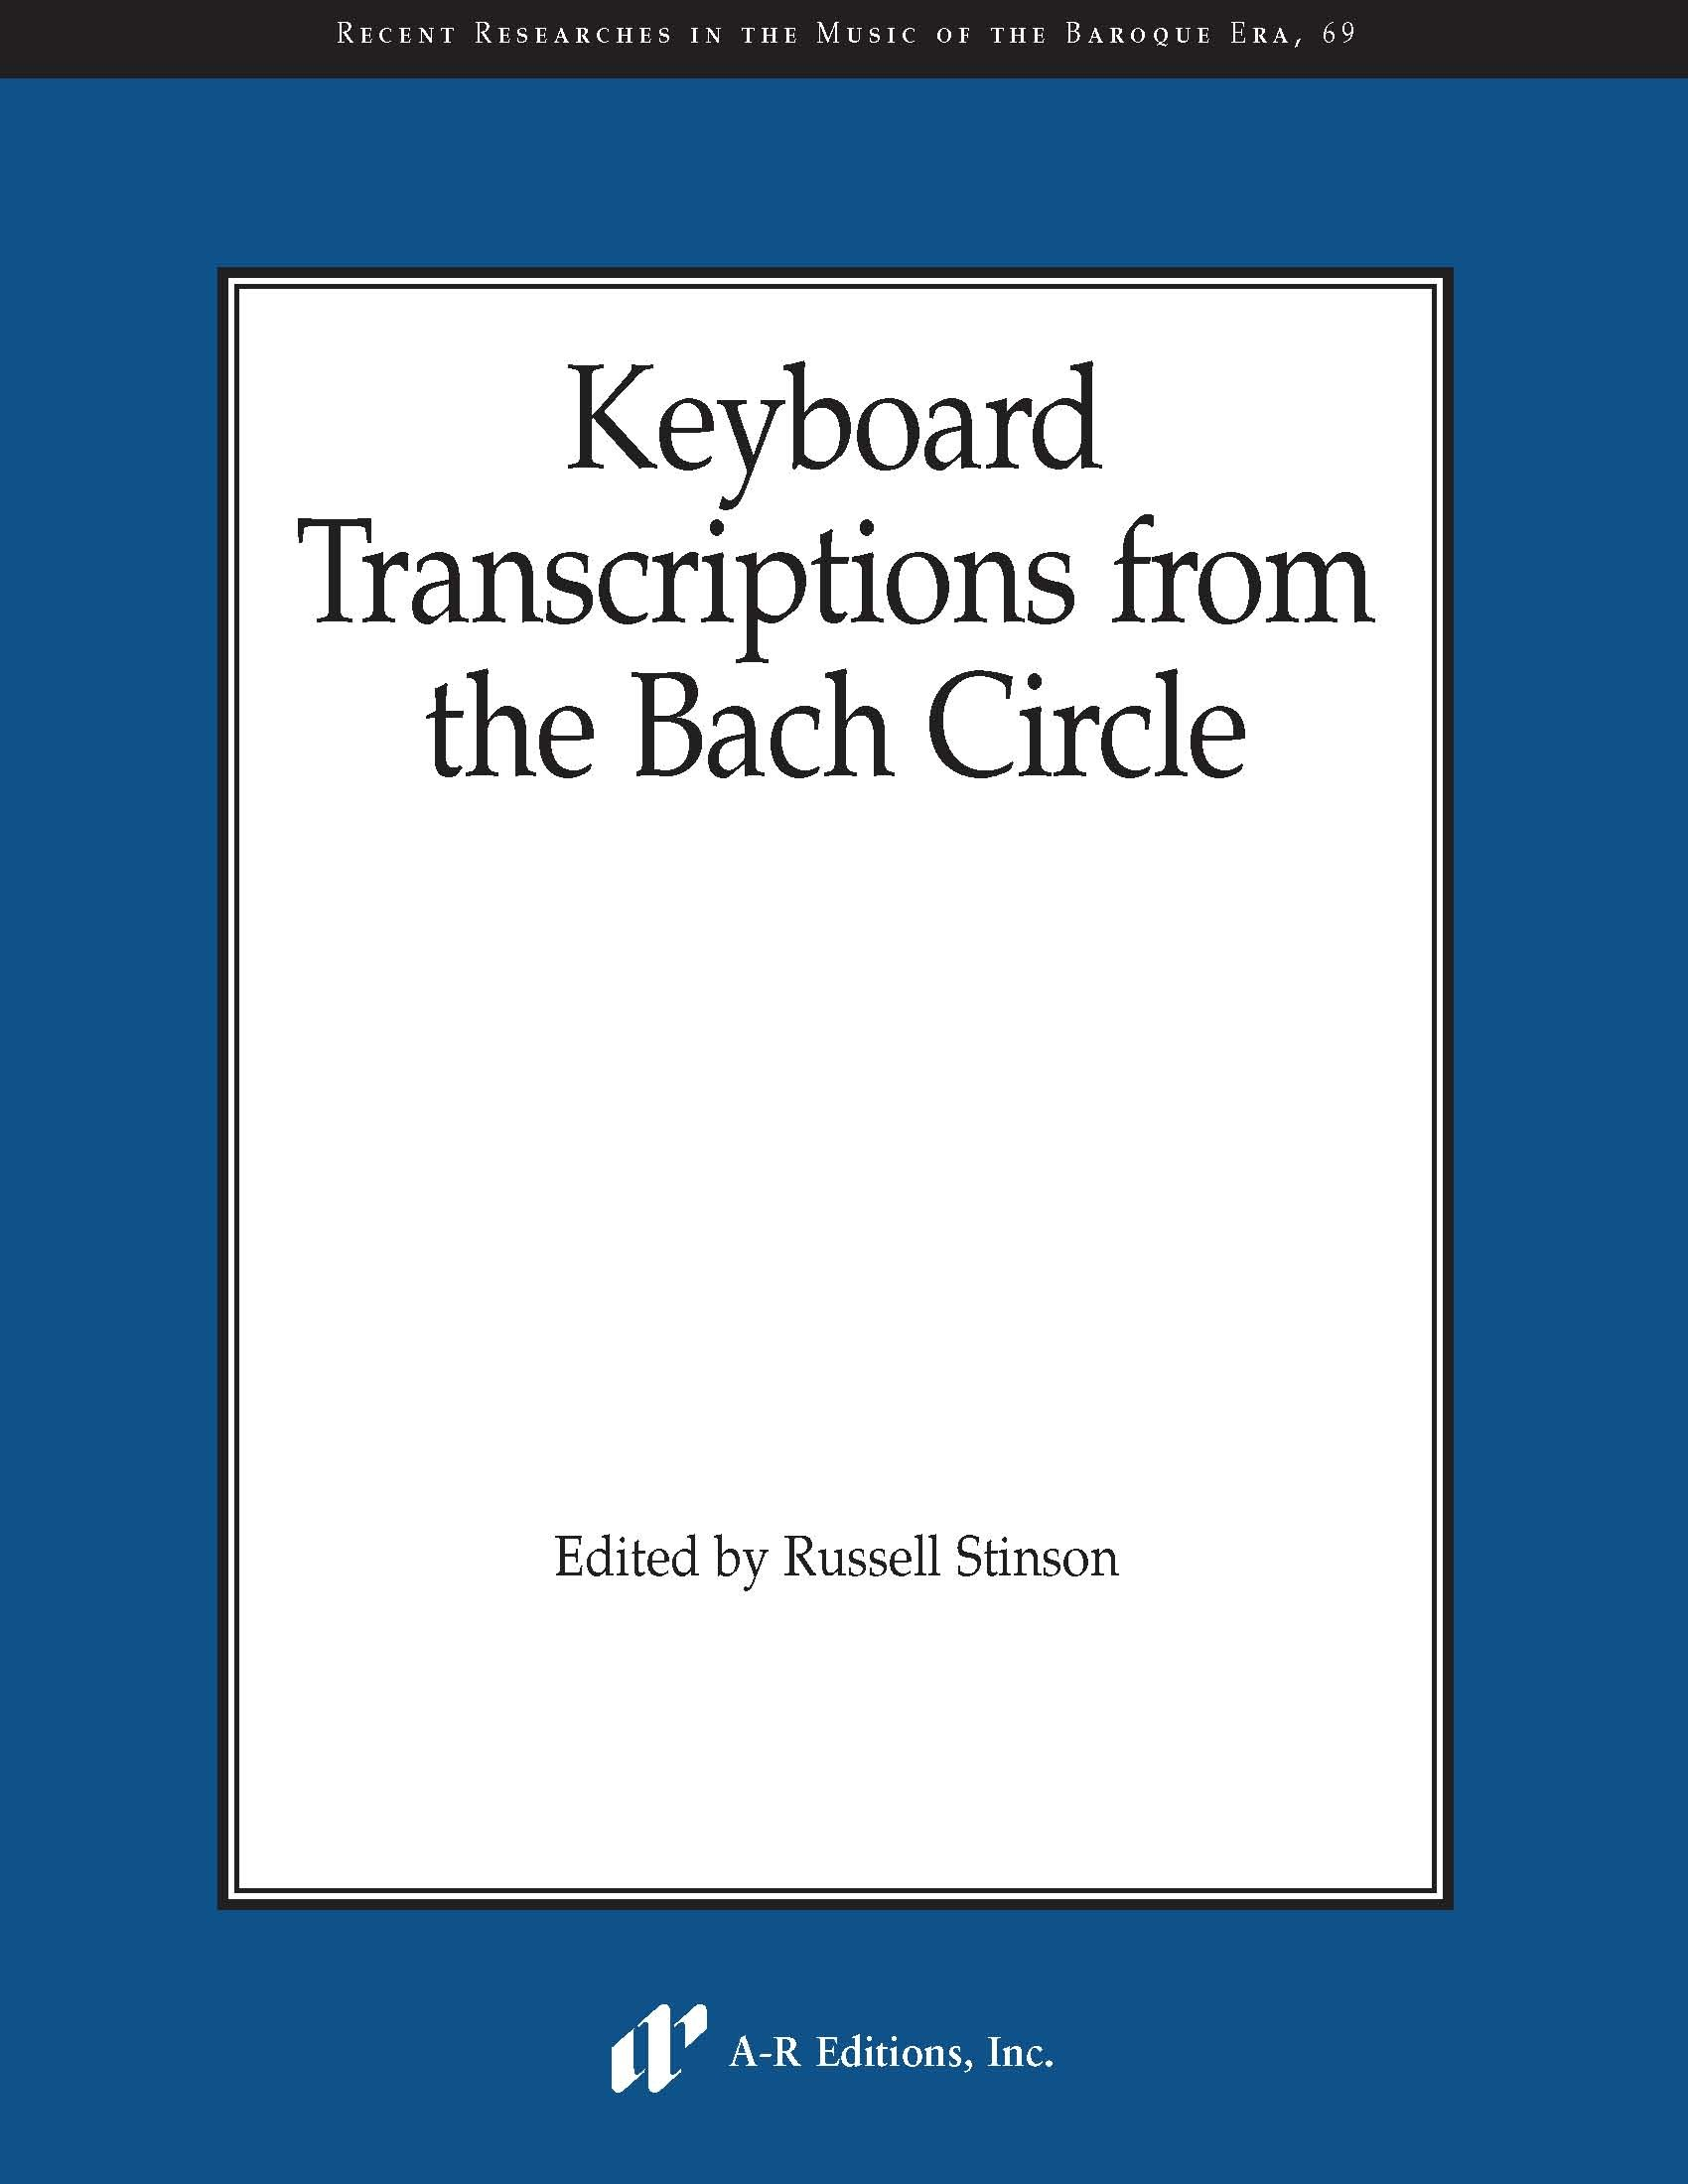 Keyboard Transcriptions from the Bach Circle